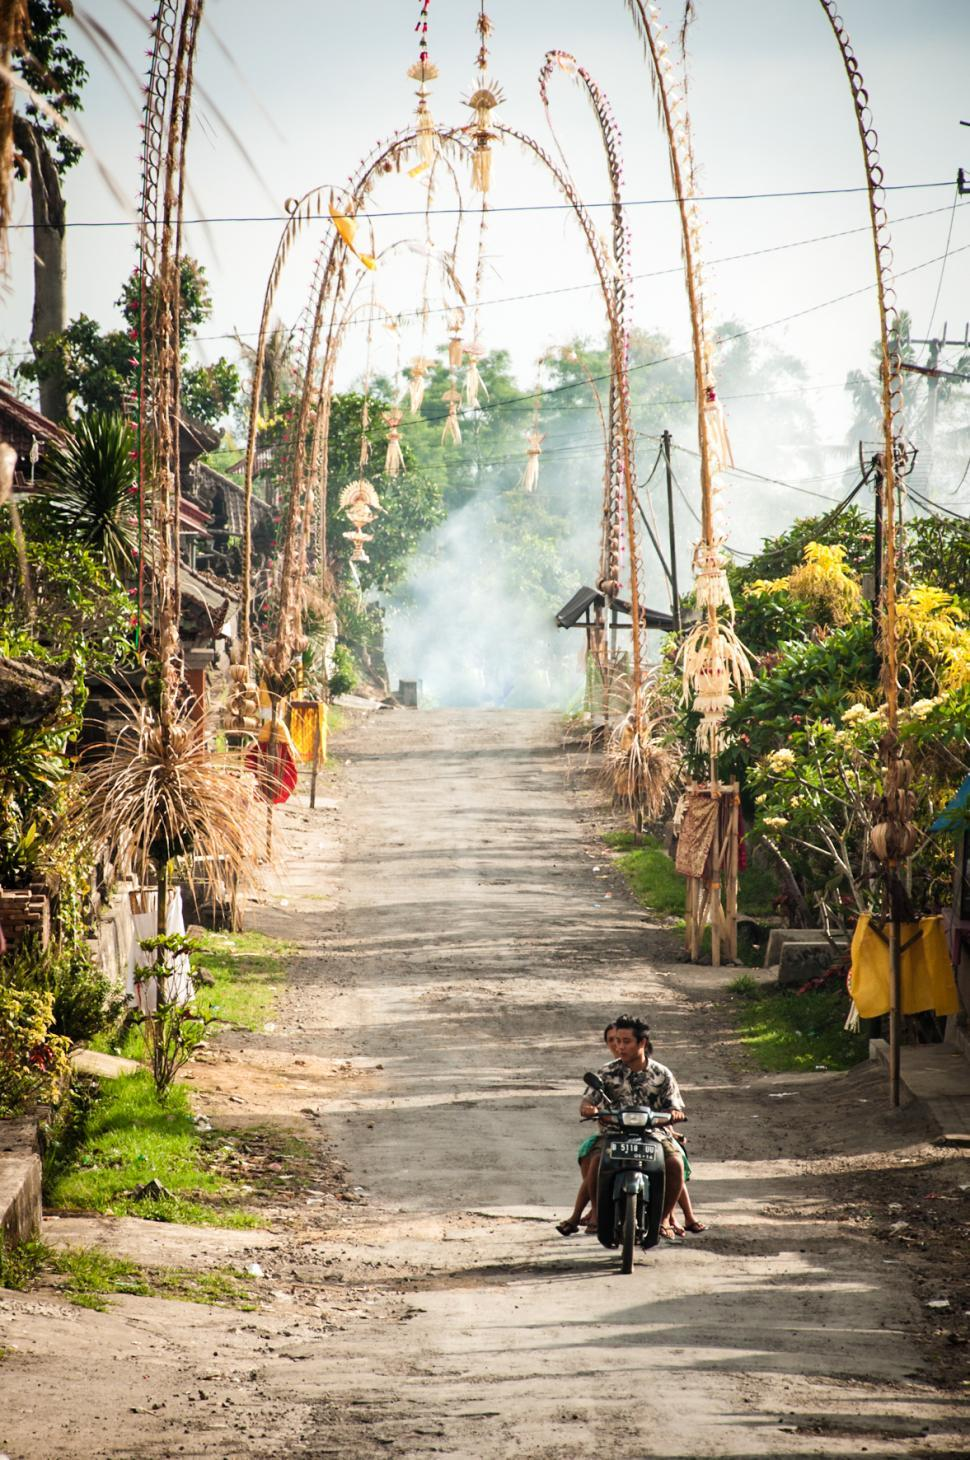 Download Free Stock HD Photo of Balinese village street Online